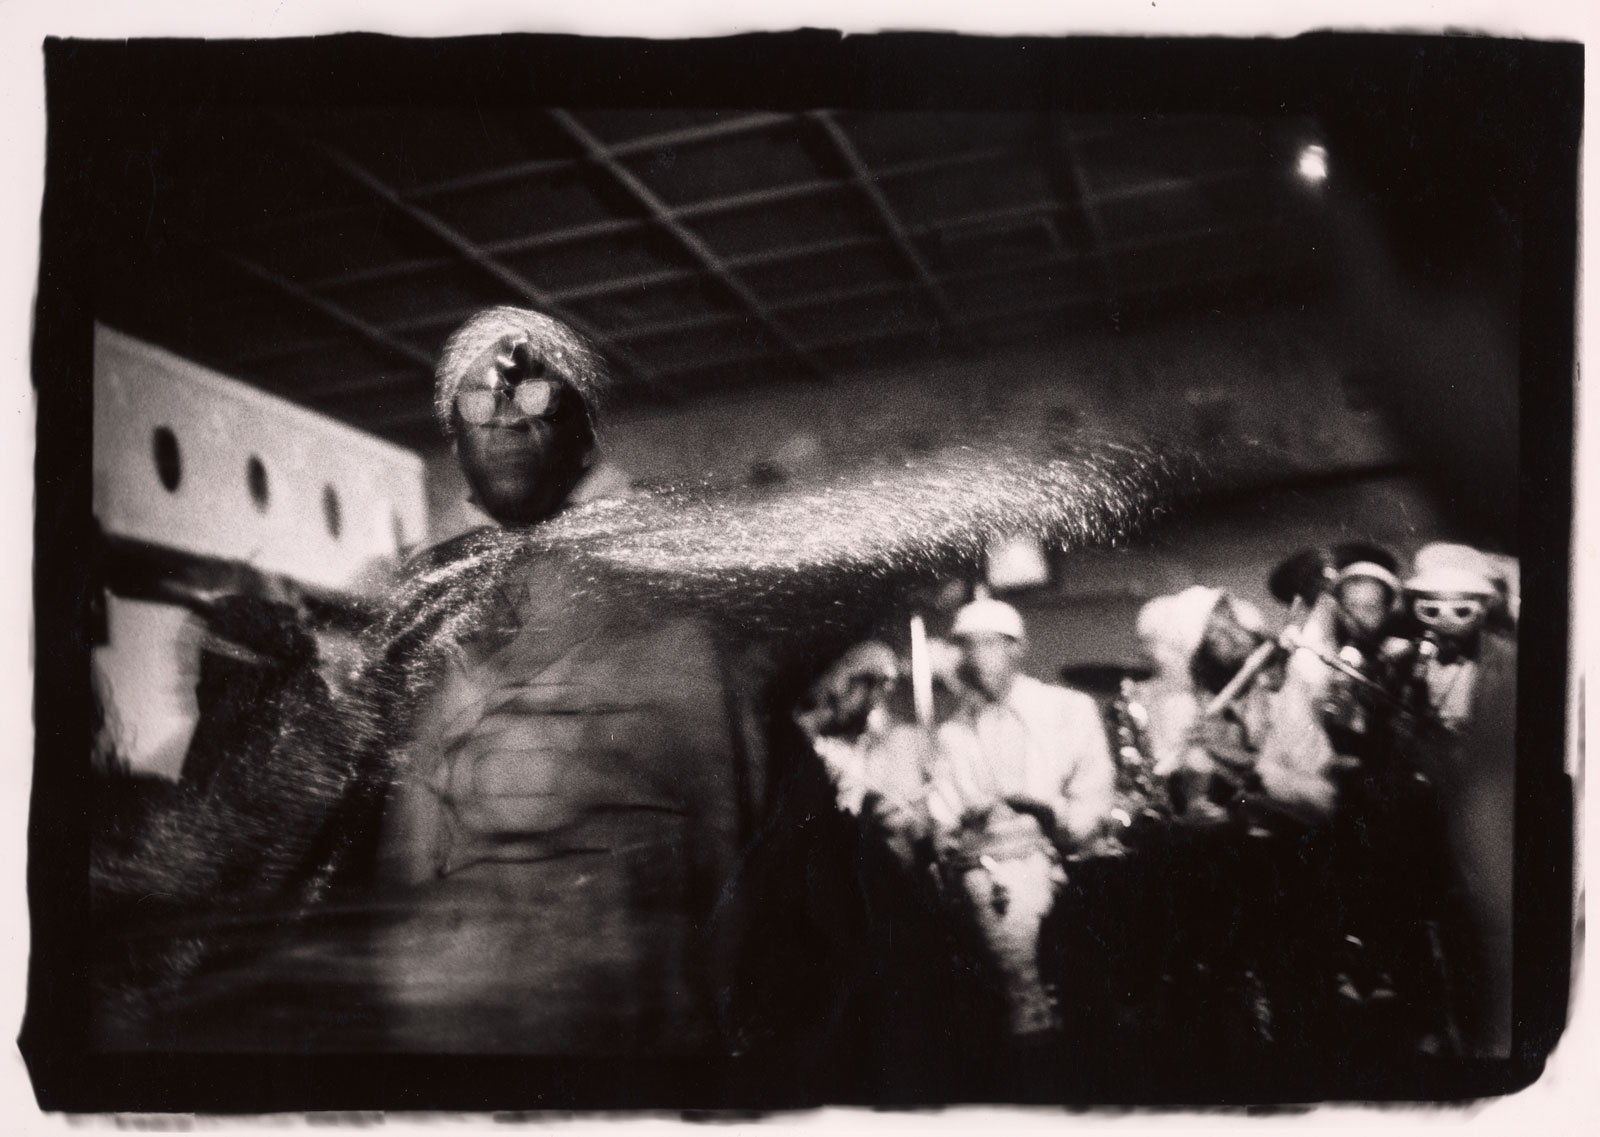 Sun Ra performing in club setting with musicians in background